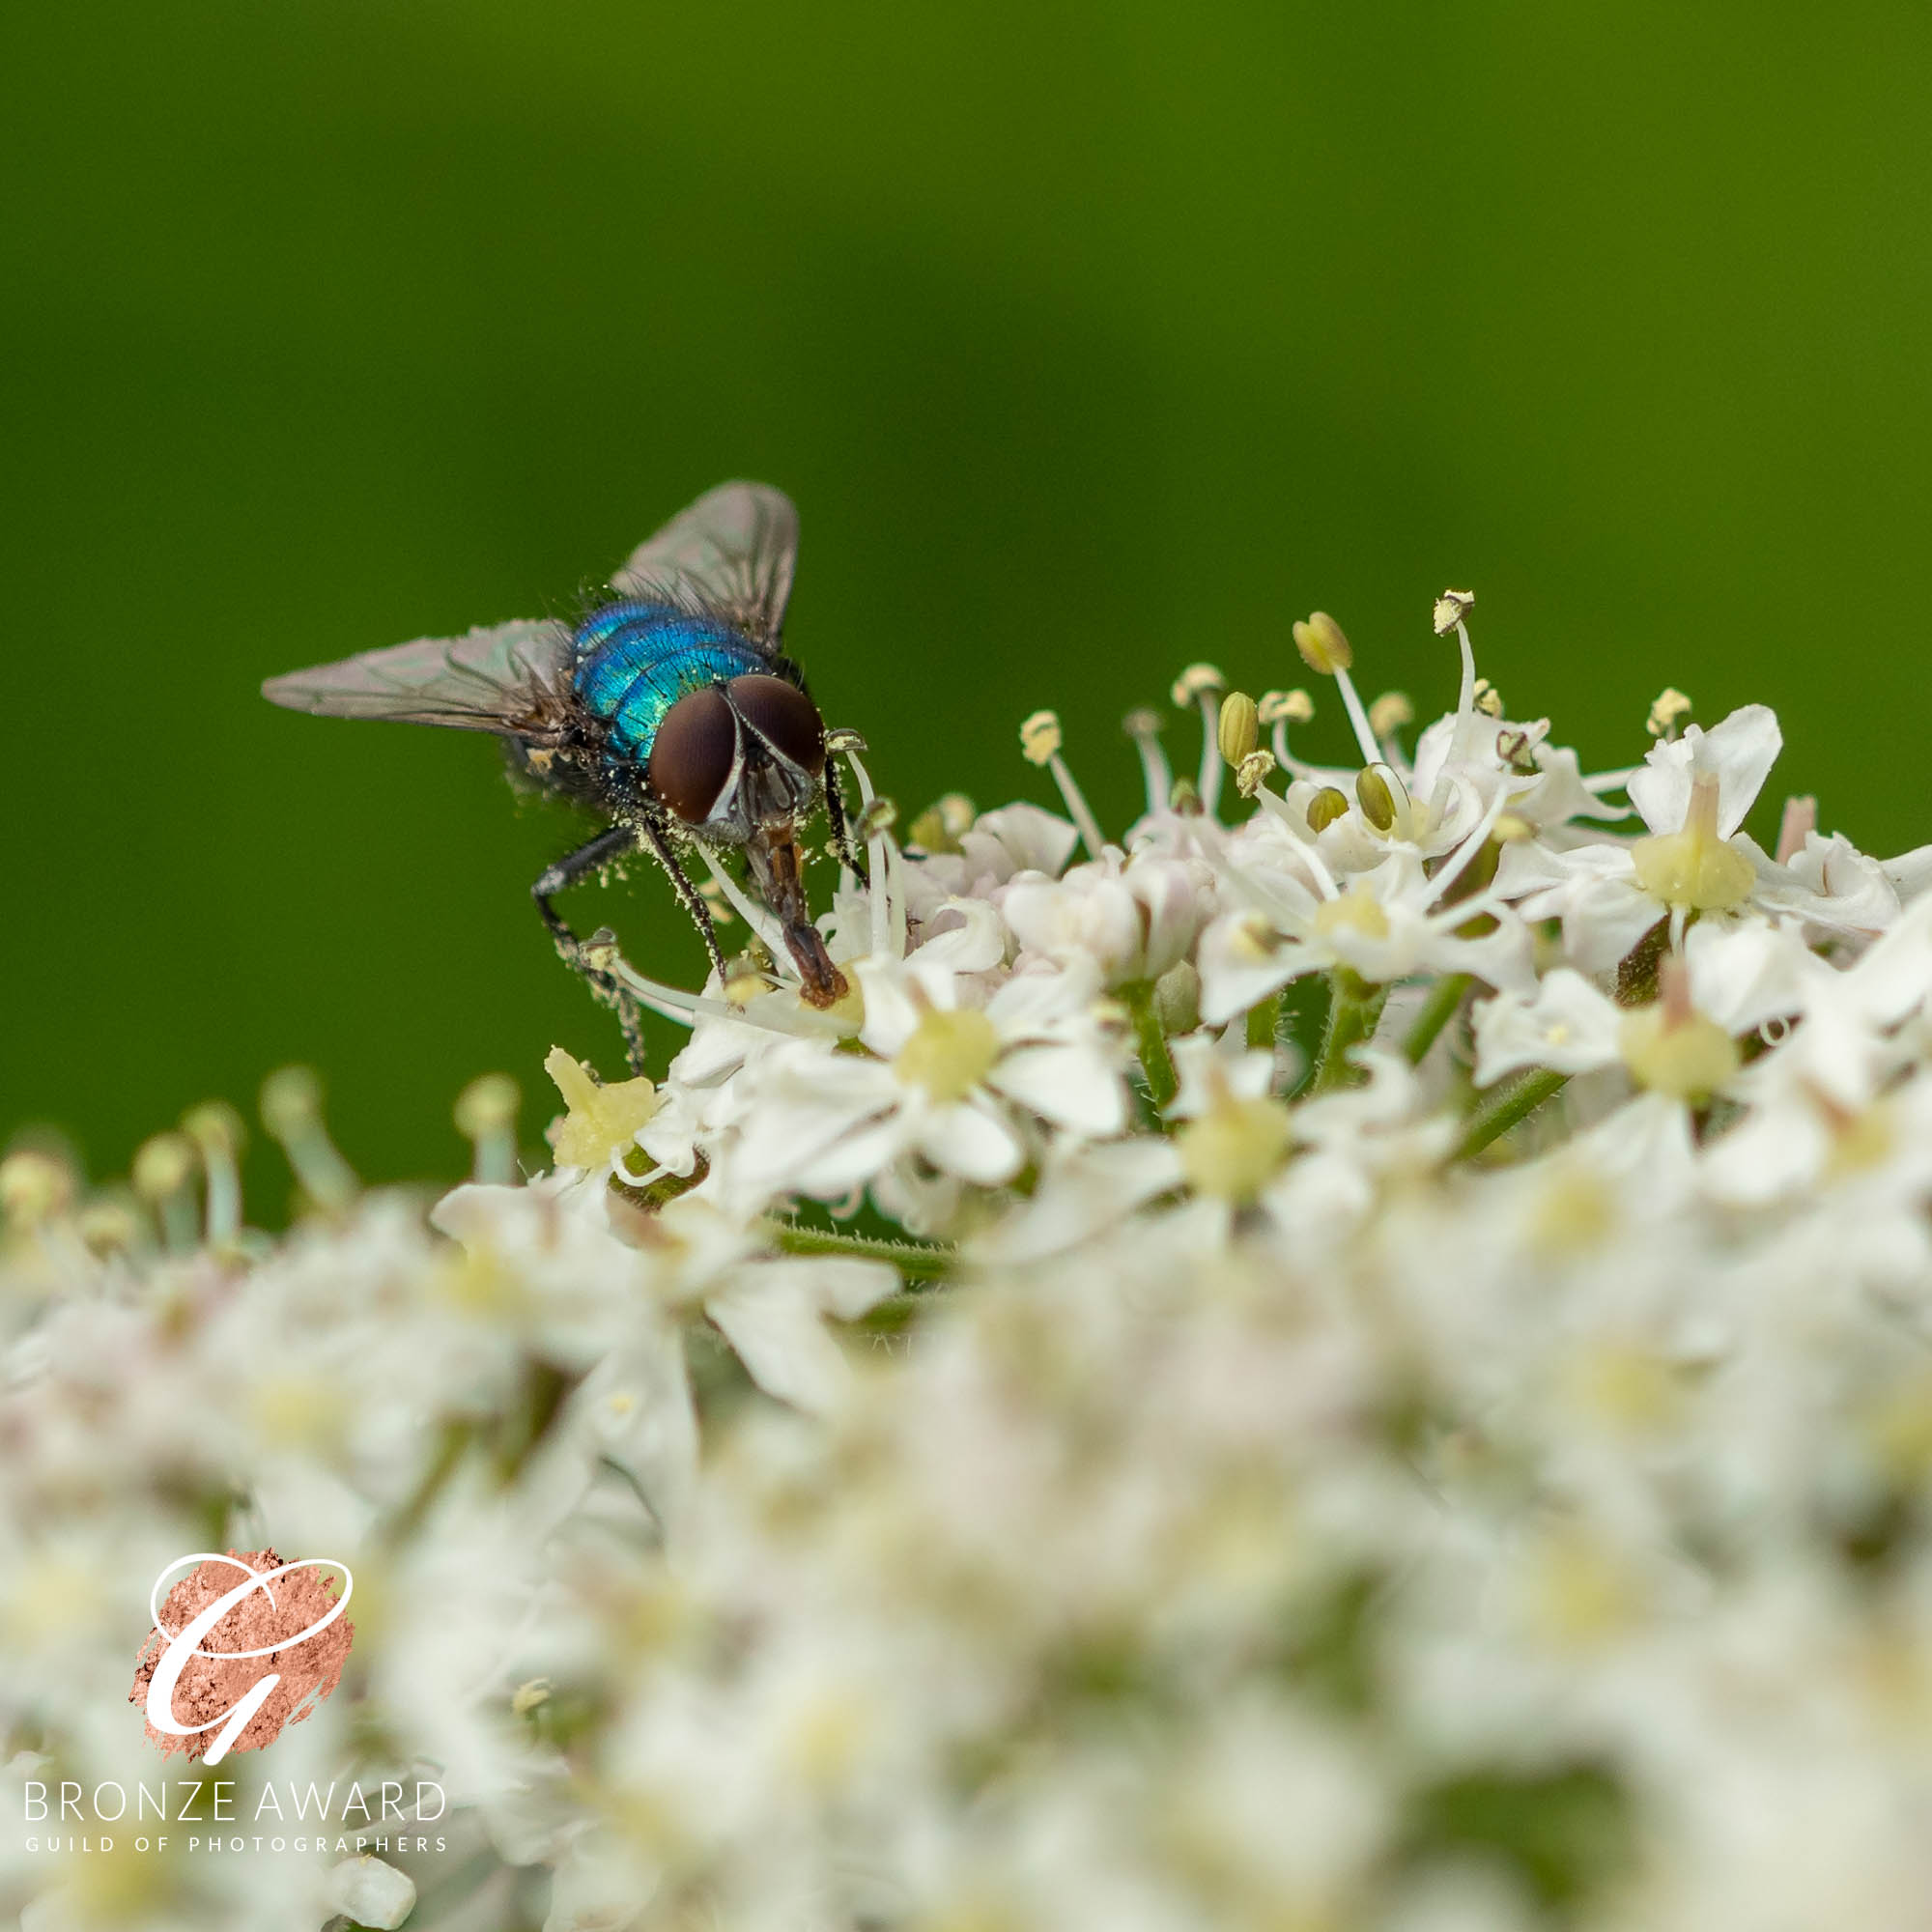 Blue fly on flower-6132